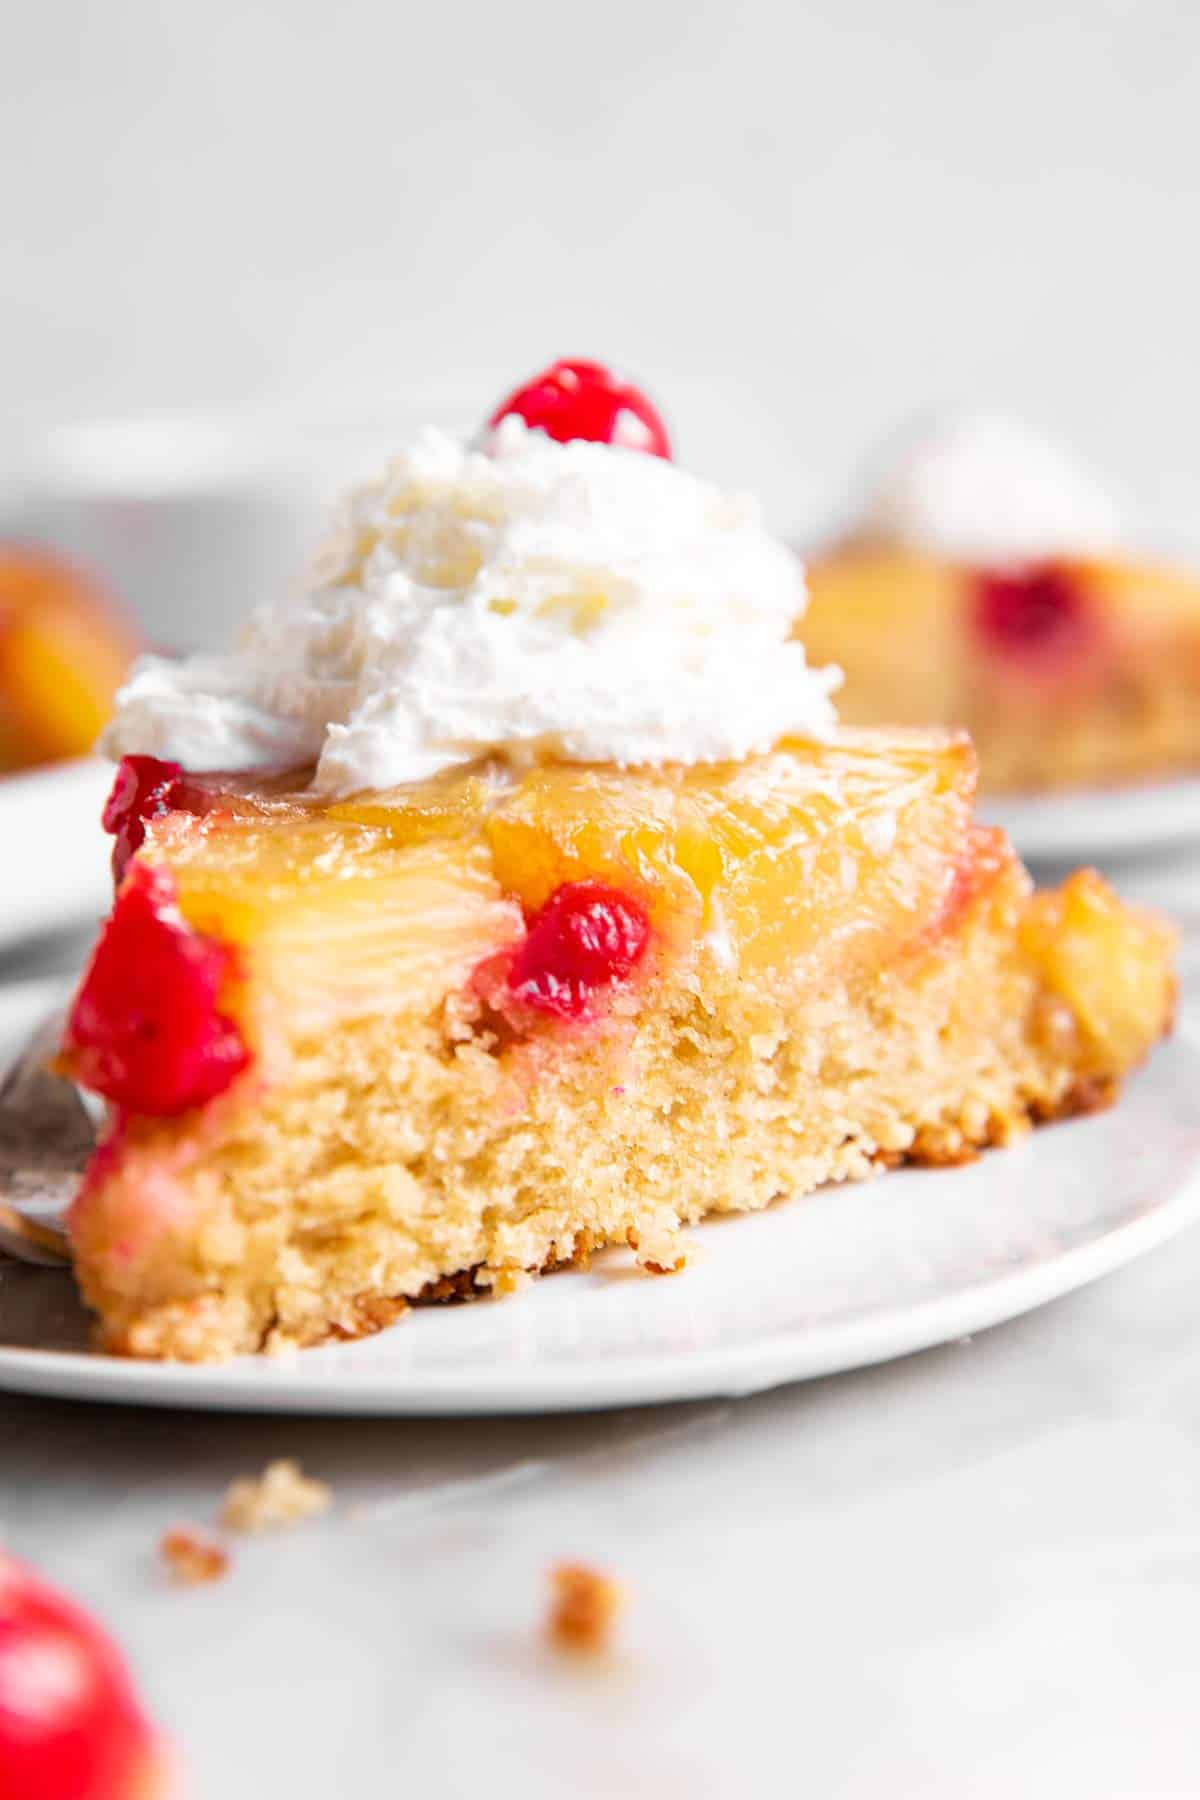 slice of pineapple upside down cake with whipped cream on white plate